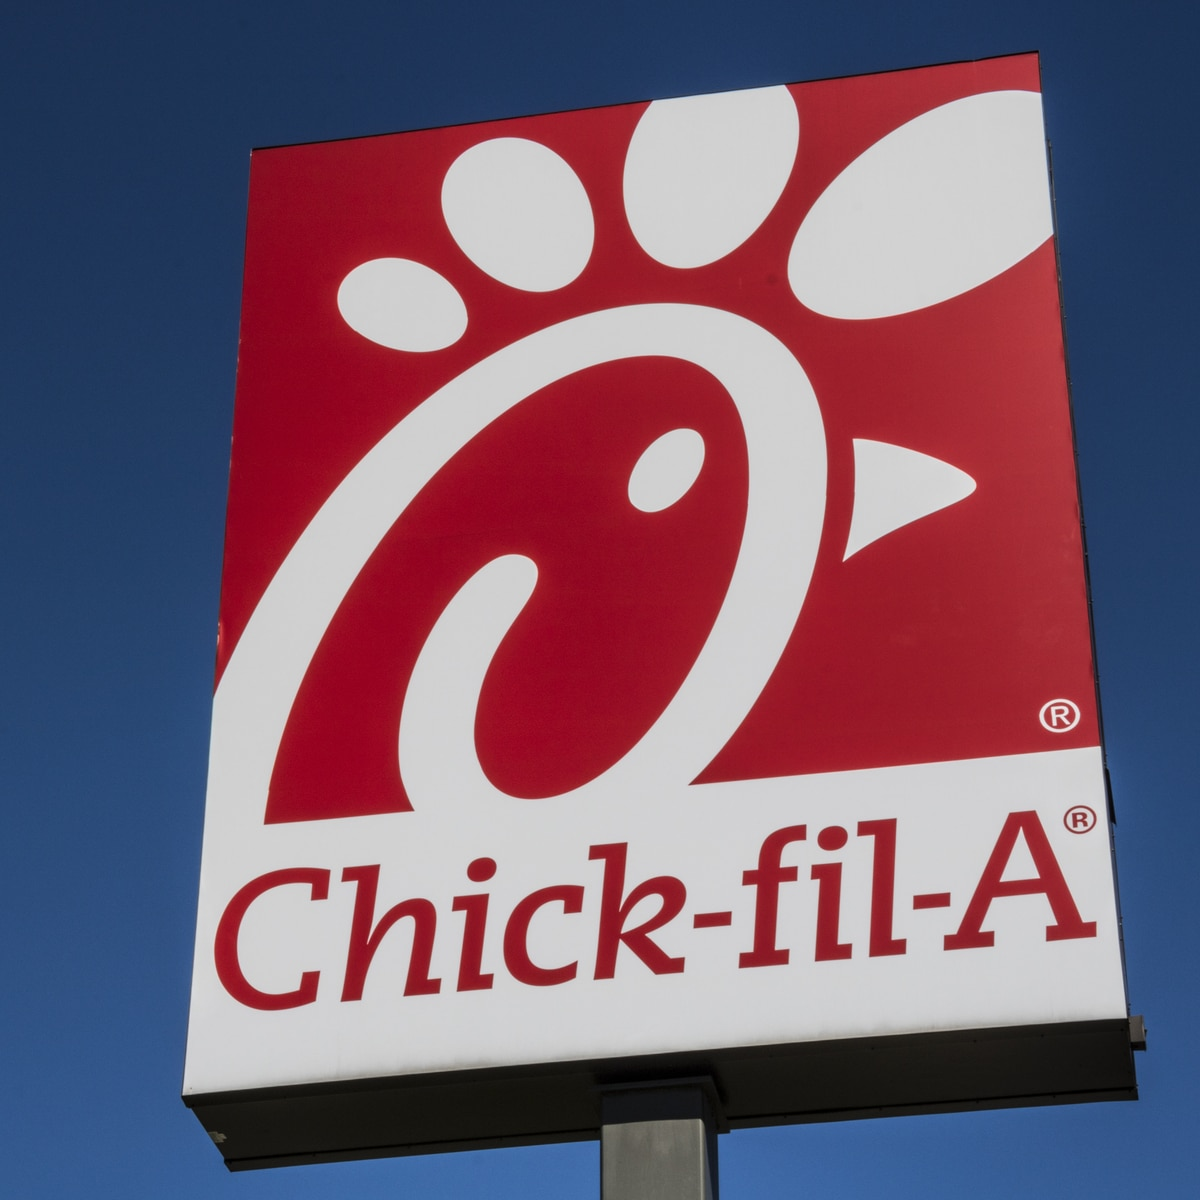 Chick-fil-A sign